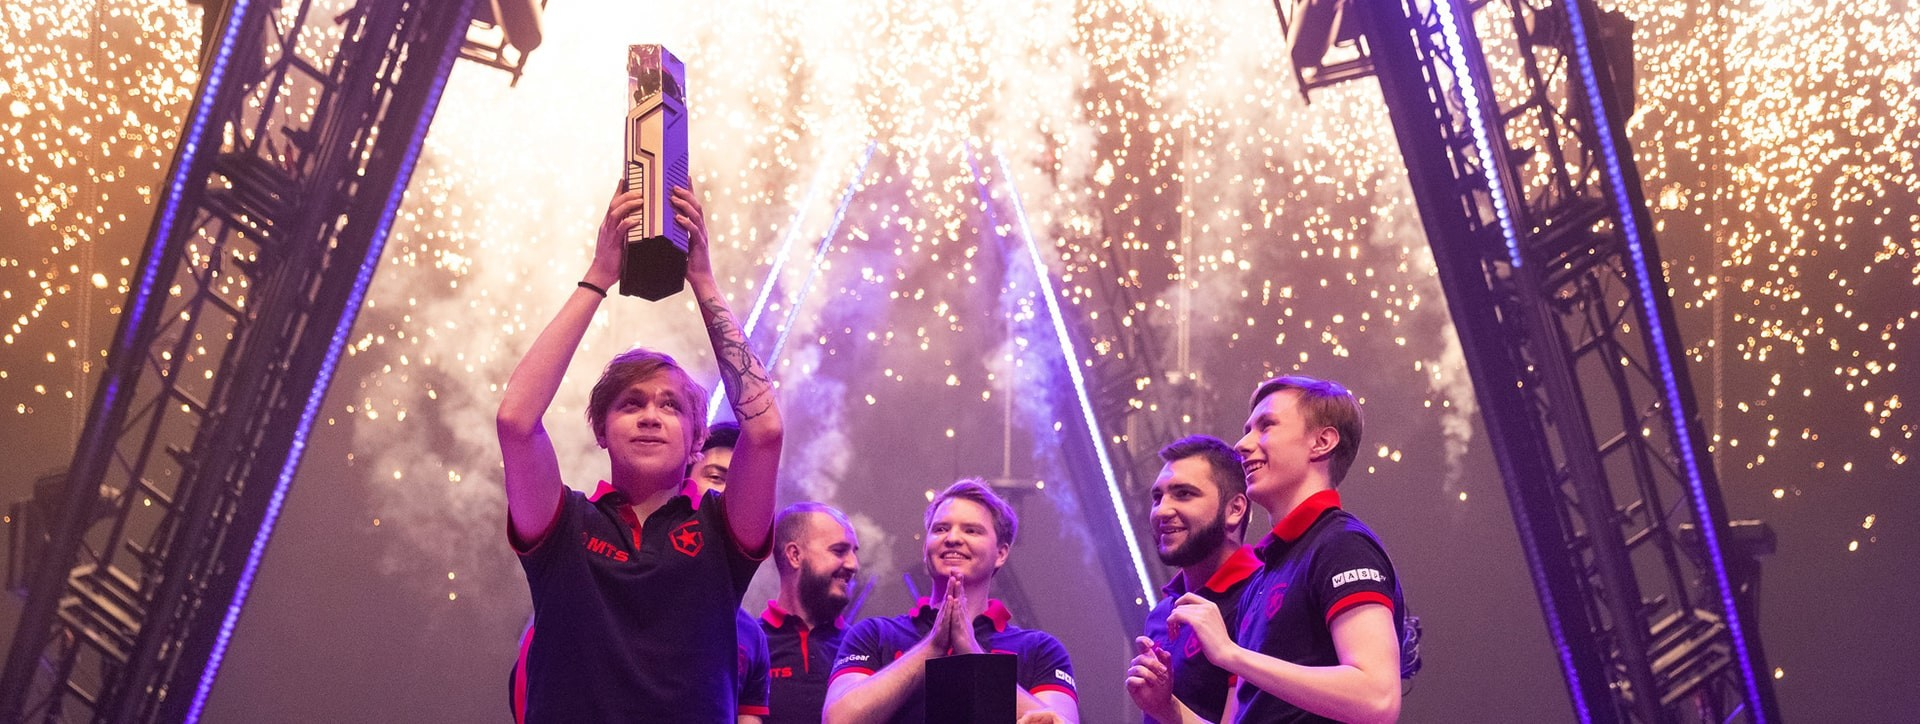 Gambit bring Masters trophy to EMEA